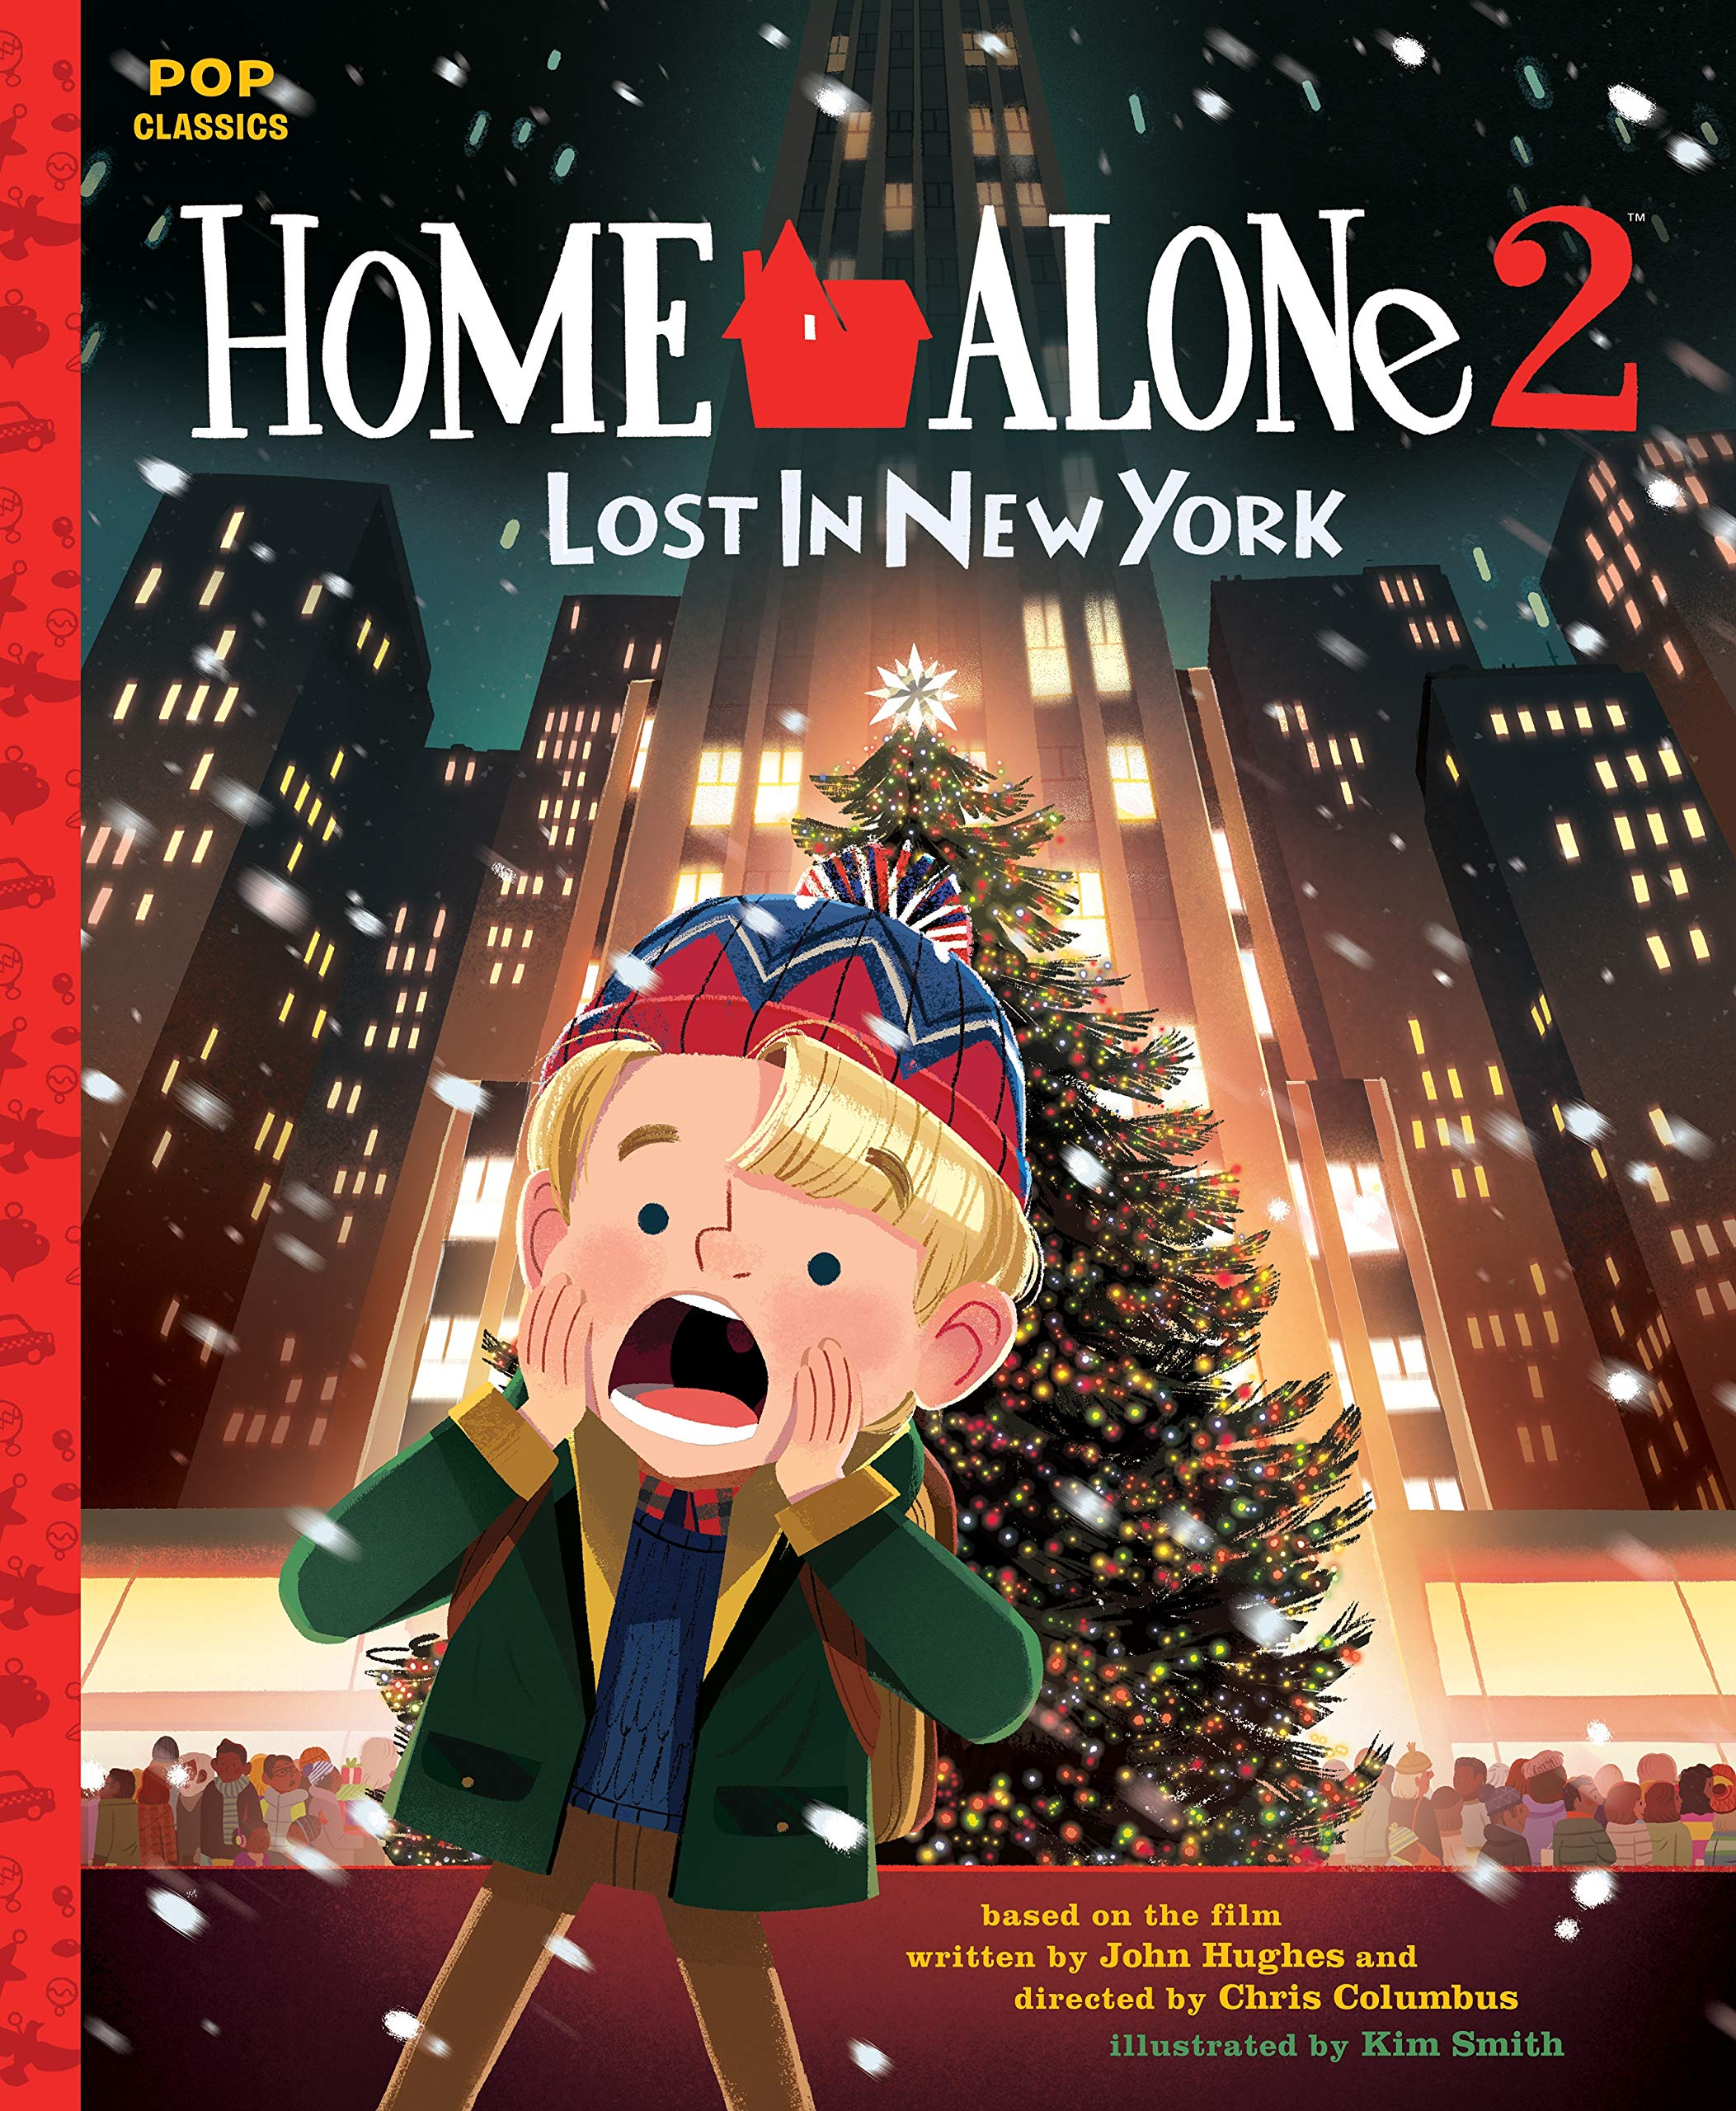 Home Alone 2 Lost In New York The Classic Illustrated